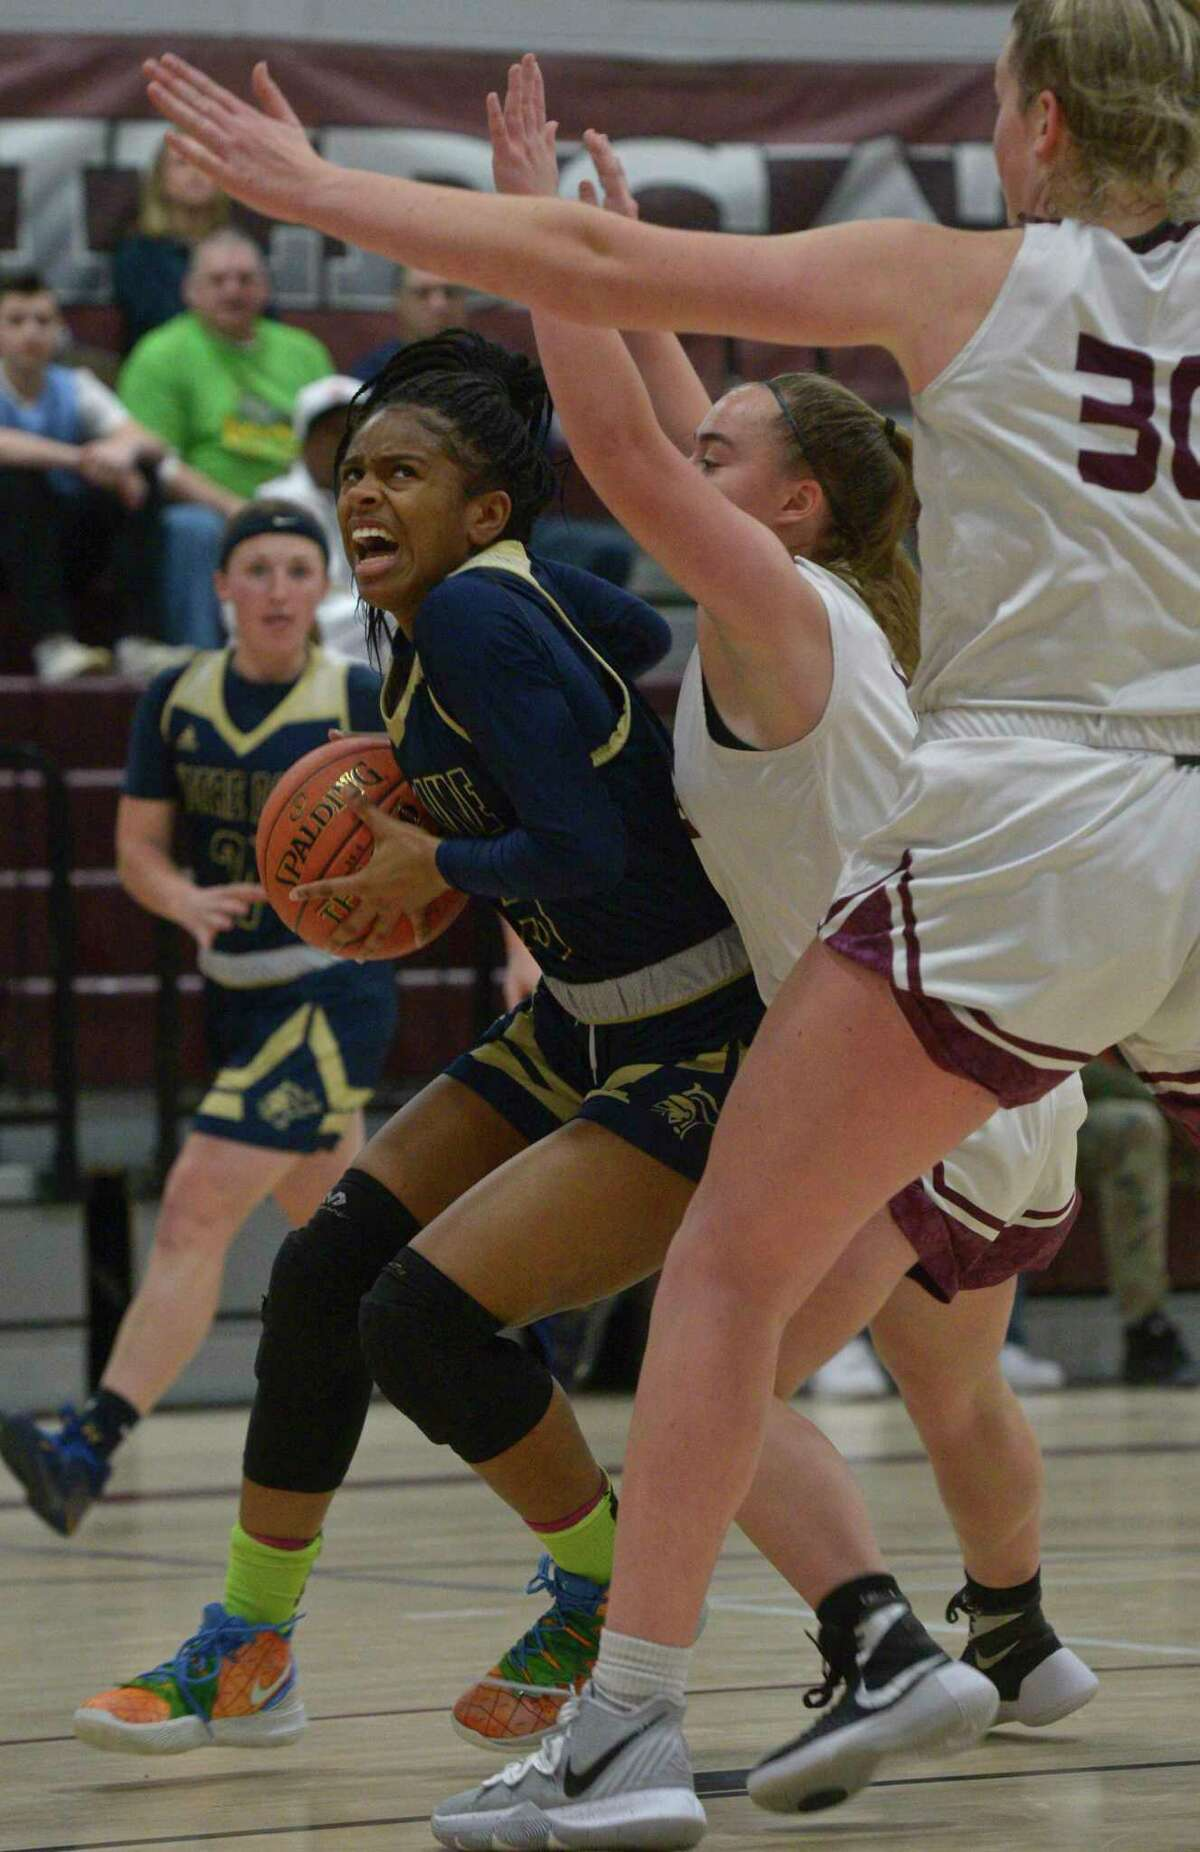 Notre Dame-Fairfield's Ciara Brown drives to the basket while being defended by Bethel's Mia Prazeres (1) and Maranda Nyborg (30) on Thursday.